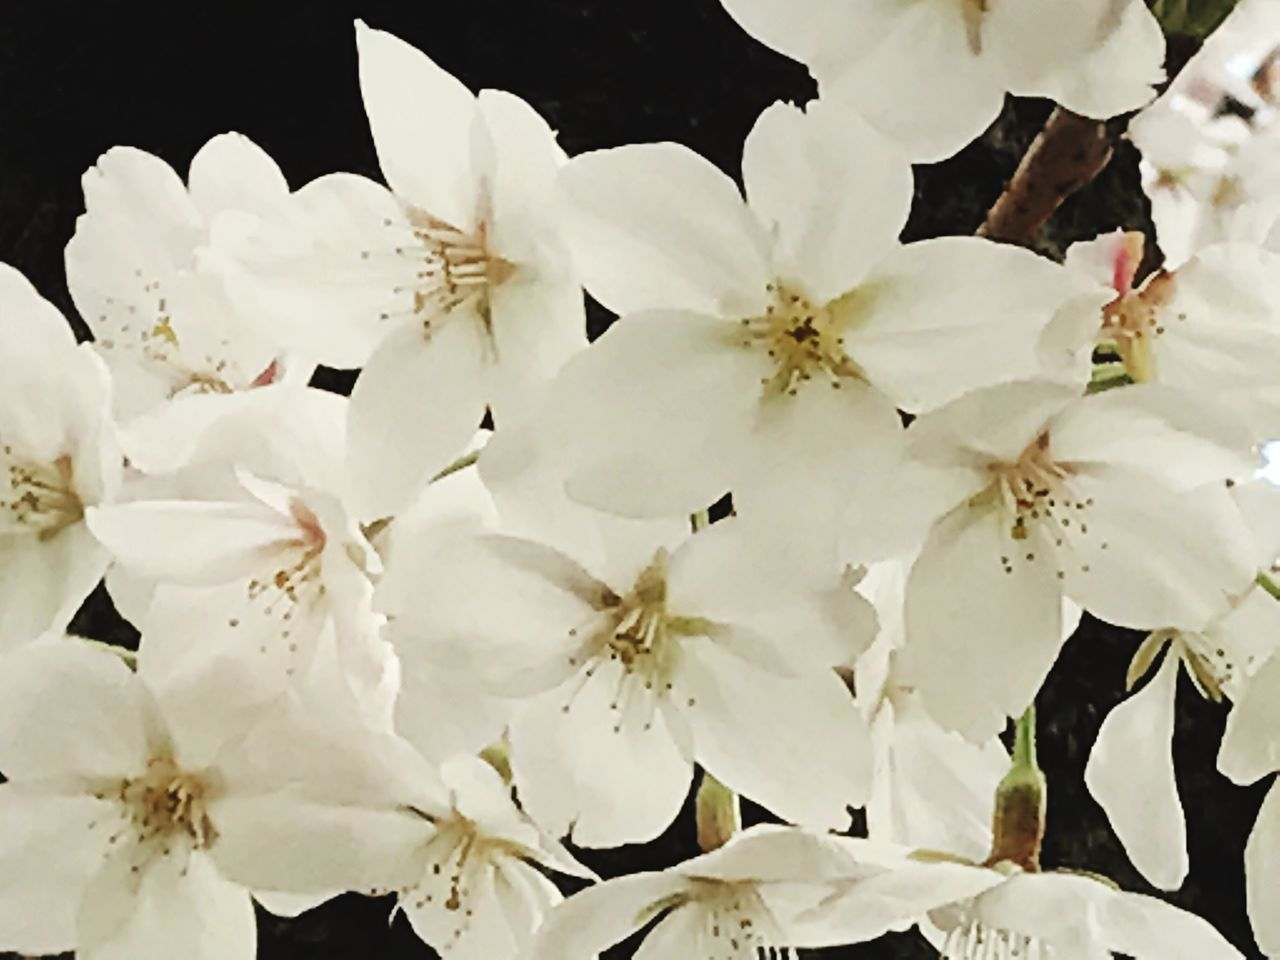 White Color Flower Growth Flower Head Beauty In Nature Freshness Spring Flowers Springtime Flowers,Plants & Garden Flowers, Nature And Beauty Flower Photography Flower Collection Petal Blossom Flowers 🌸🌸🌸 Flower Of Eyeem Nature Photography Naturelovers Nature Collection Nature Lover